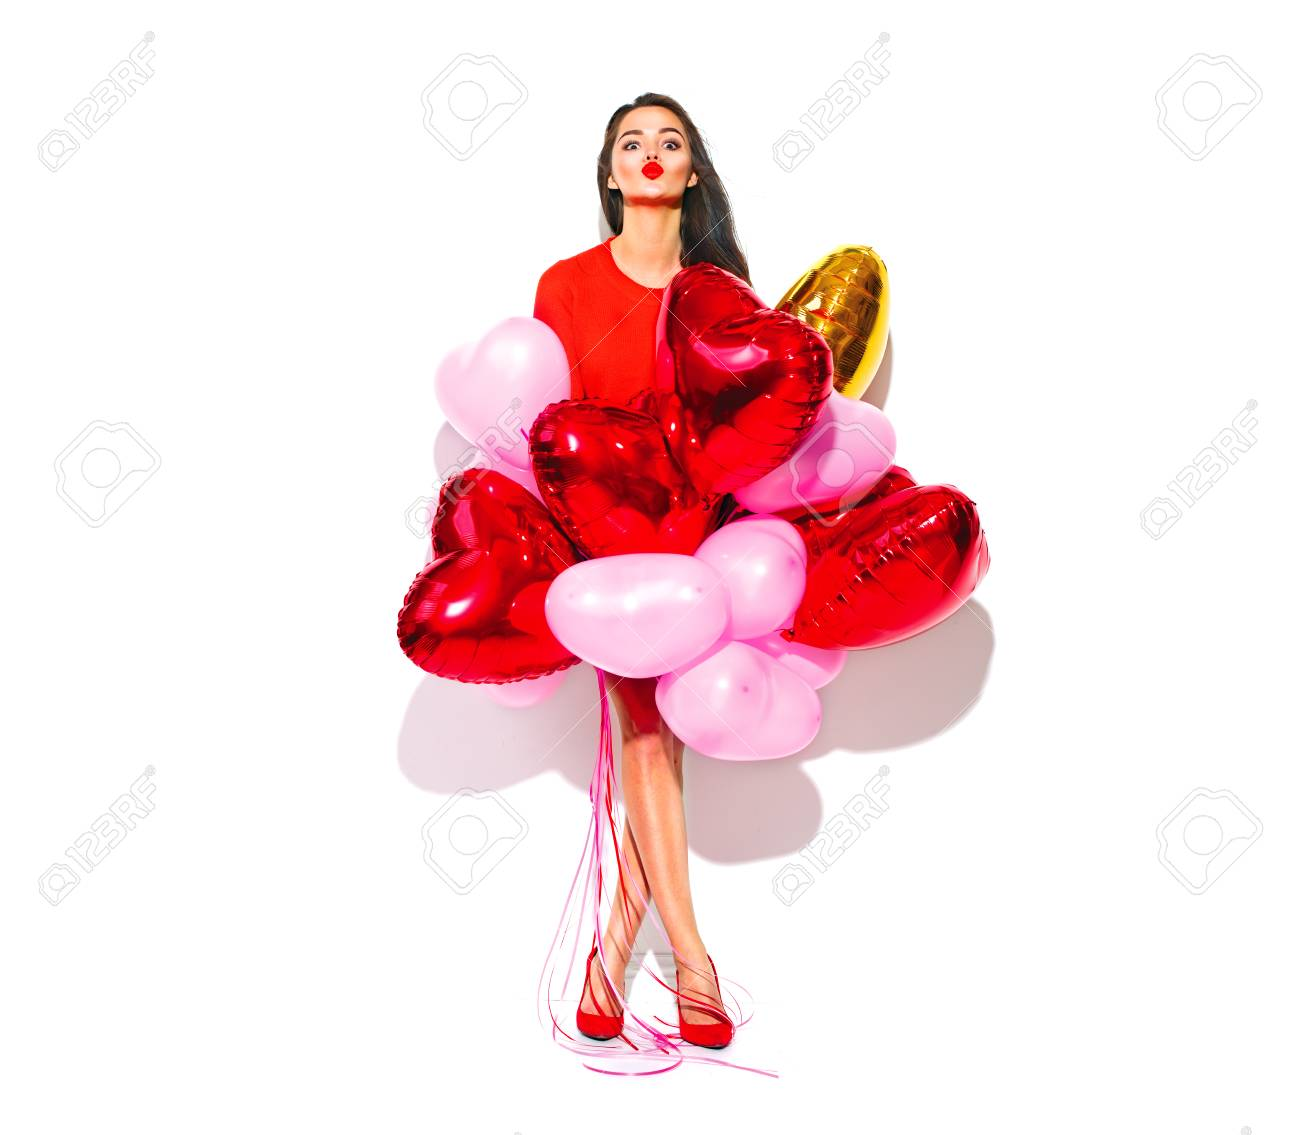 Valentine's Day. Joyful beauty girl with colorful air balloons having fun, isolated on white background. Full length portrait - 93531899